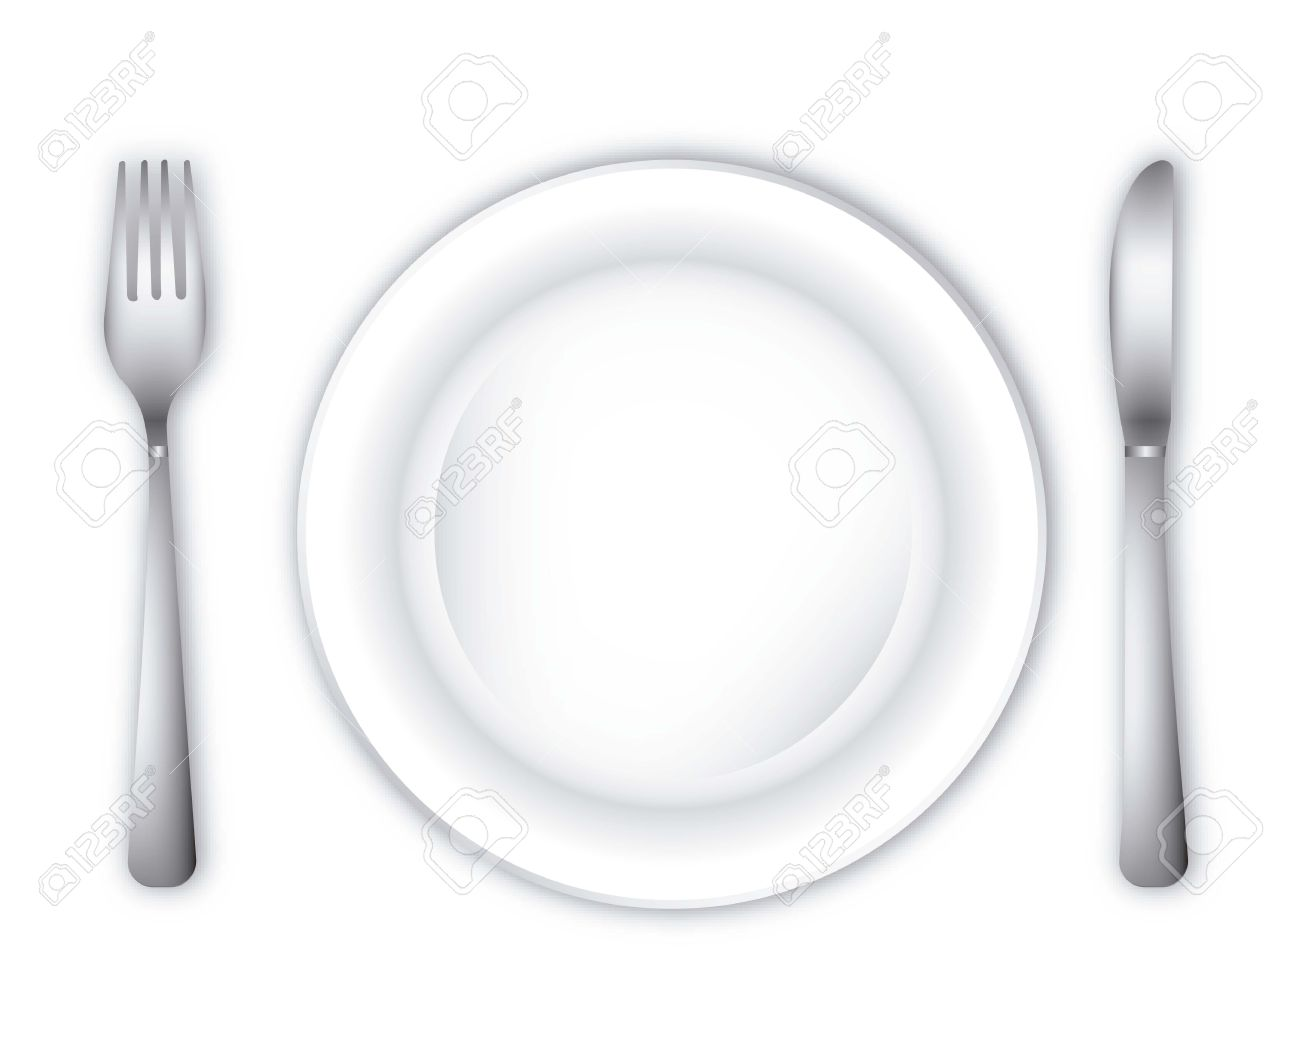 Empty Dinner Plate Over White Background Vector Illustration Royalty Free Cliparts Vectors And Stock Illustration Image 14944664